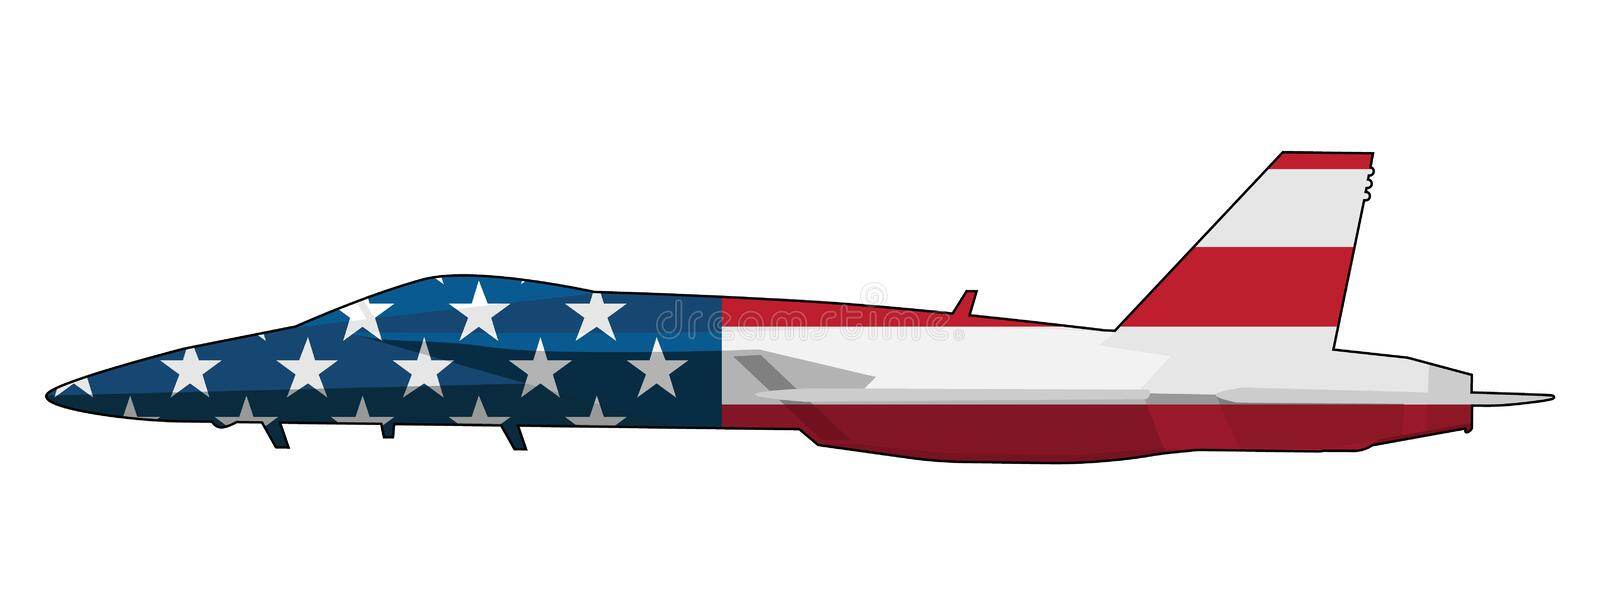 American Flag Military Fighter Jet Airplane Isolated Vector Illustration stock images